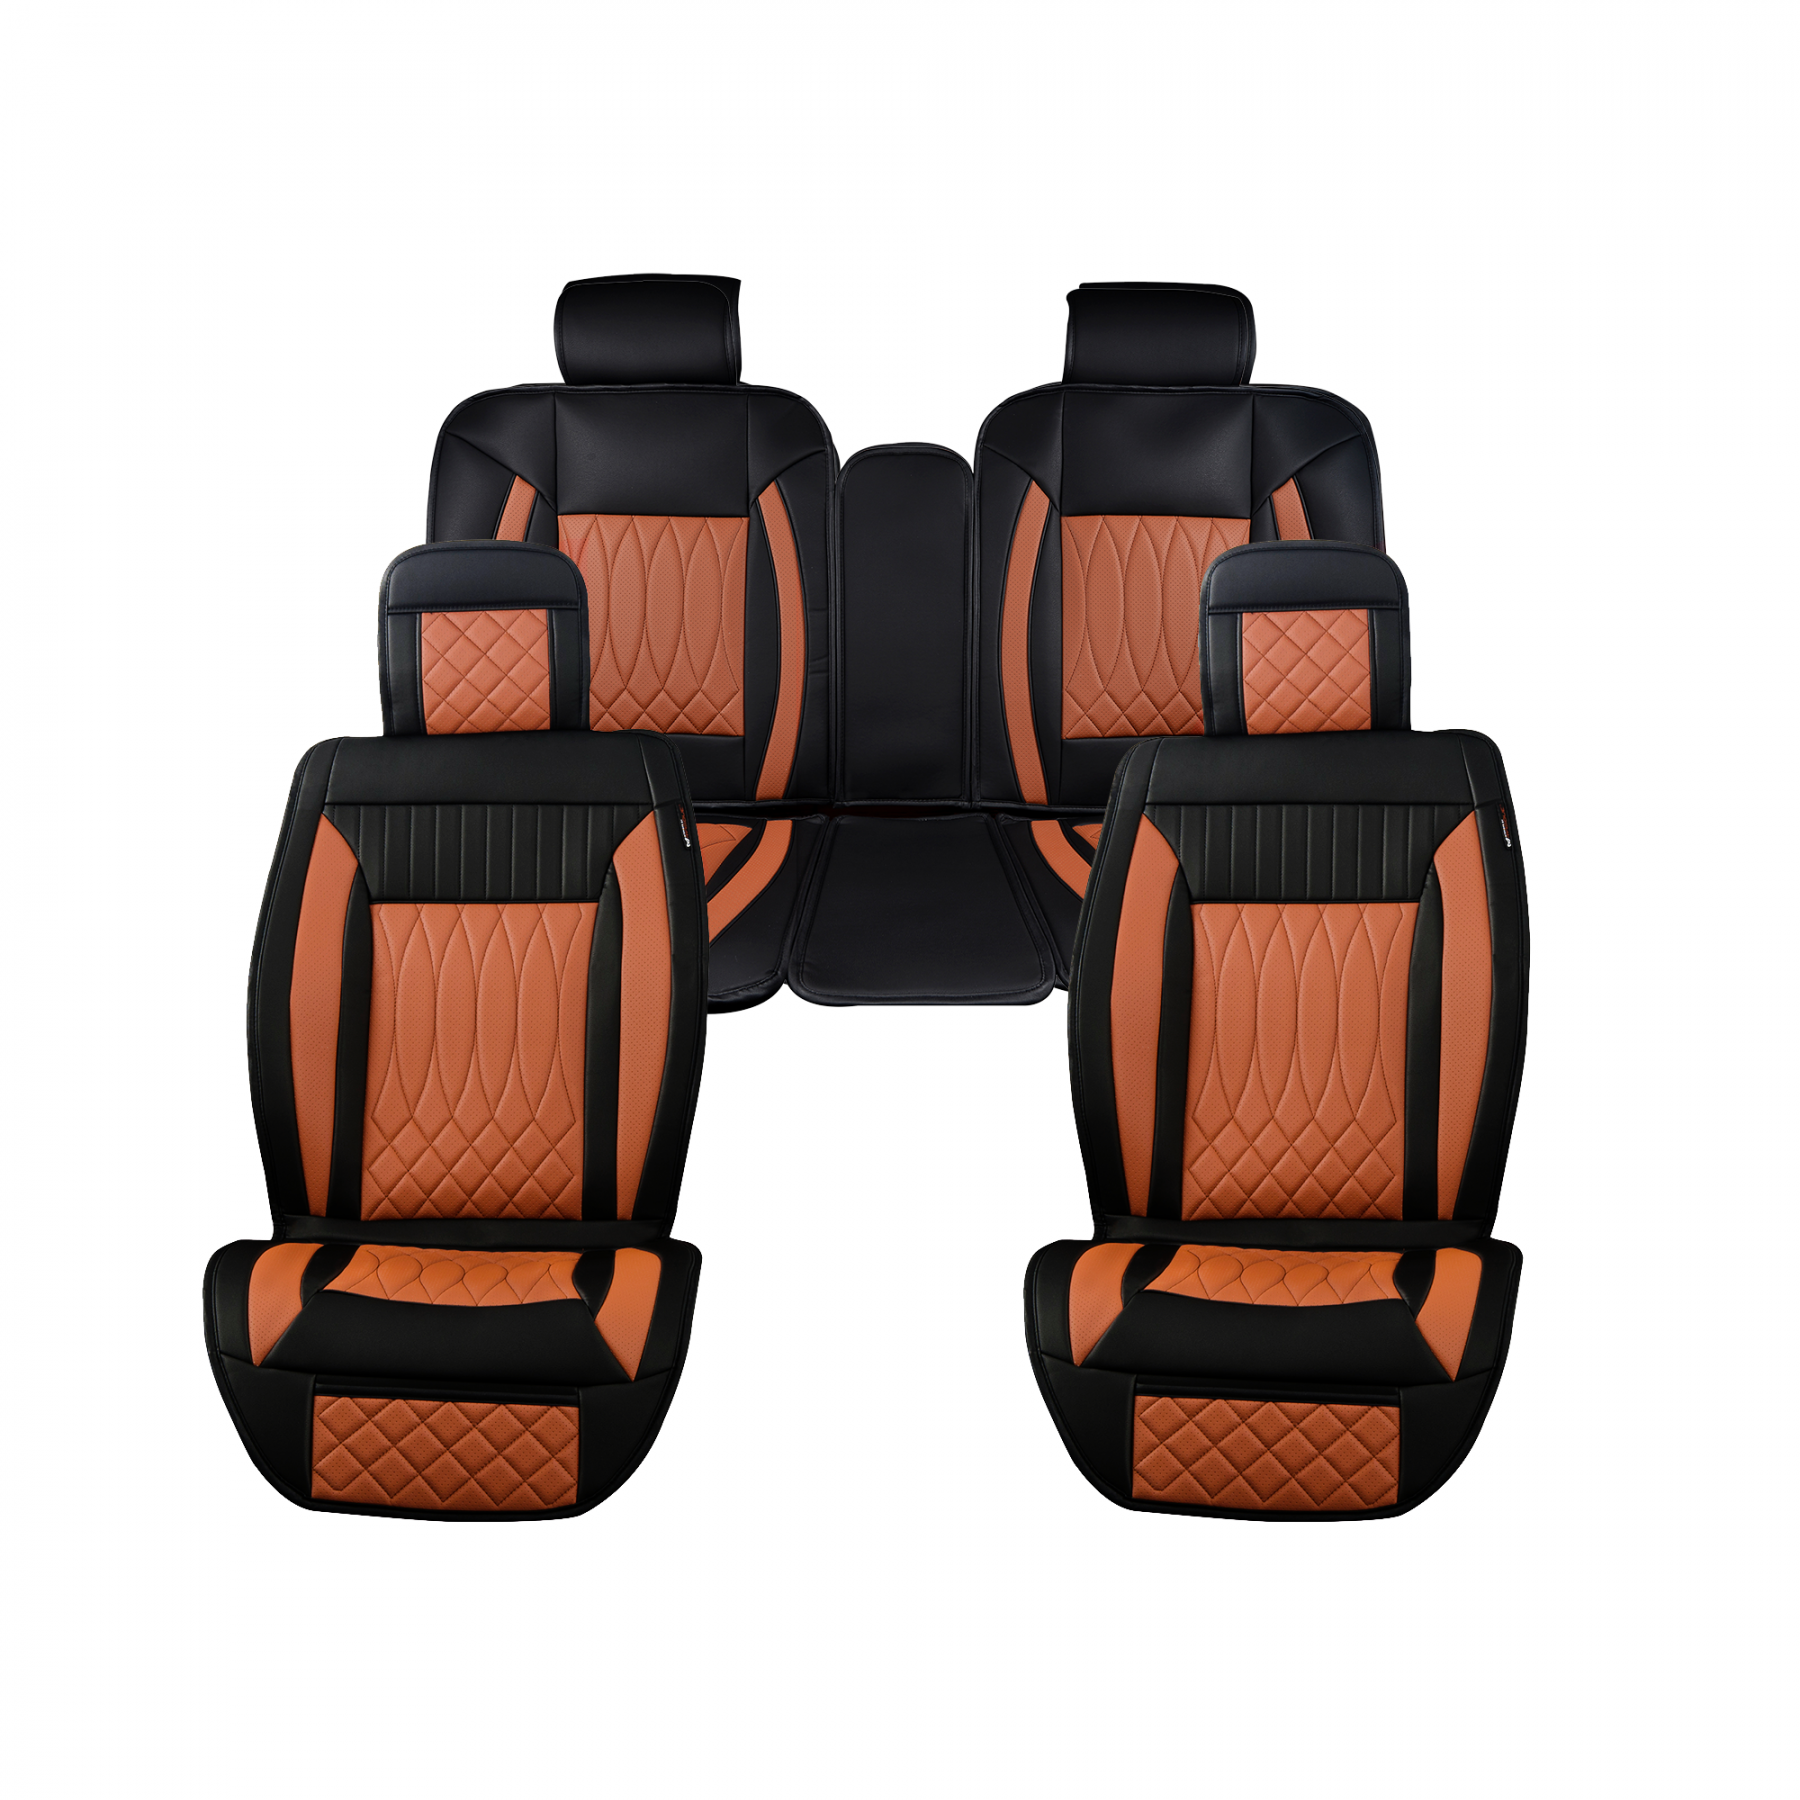 Luxury Series Saddle Brown Full Set Car Seat Cover